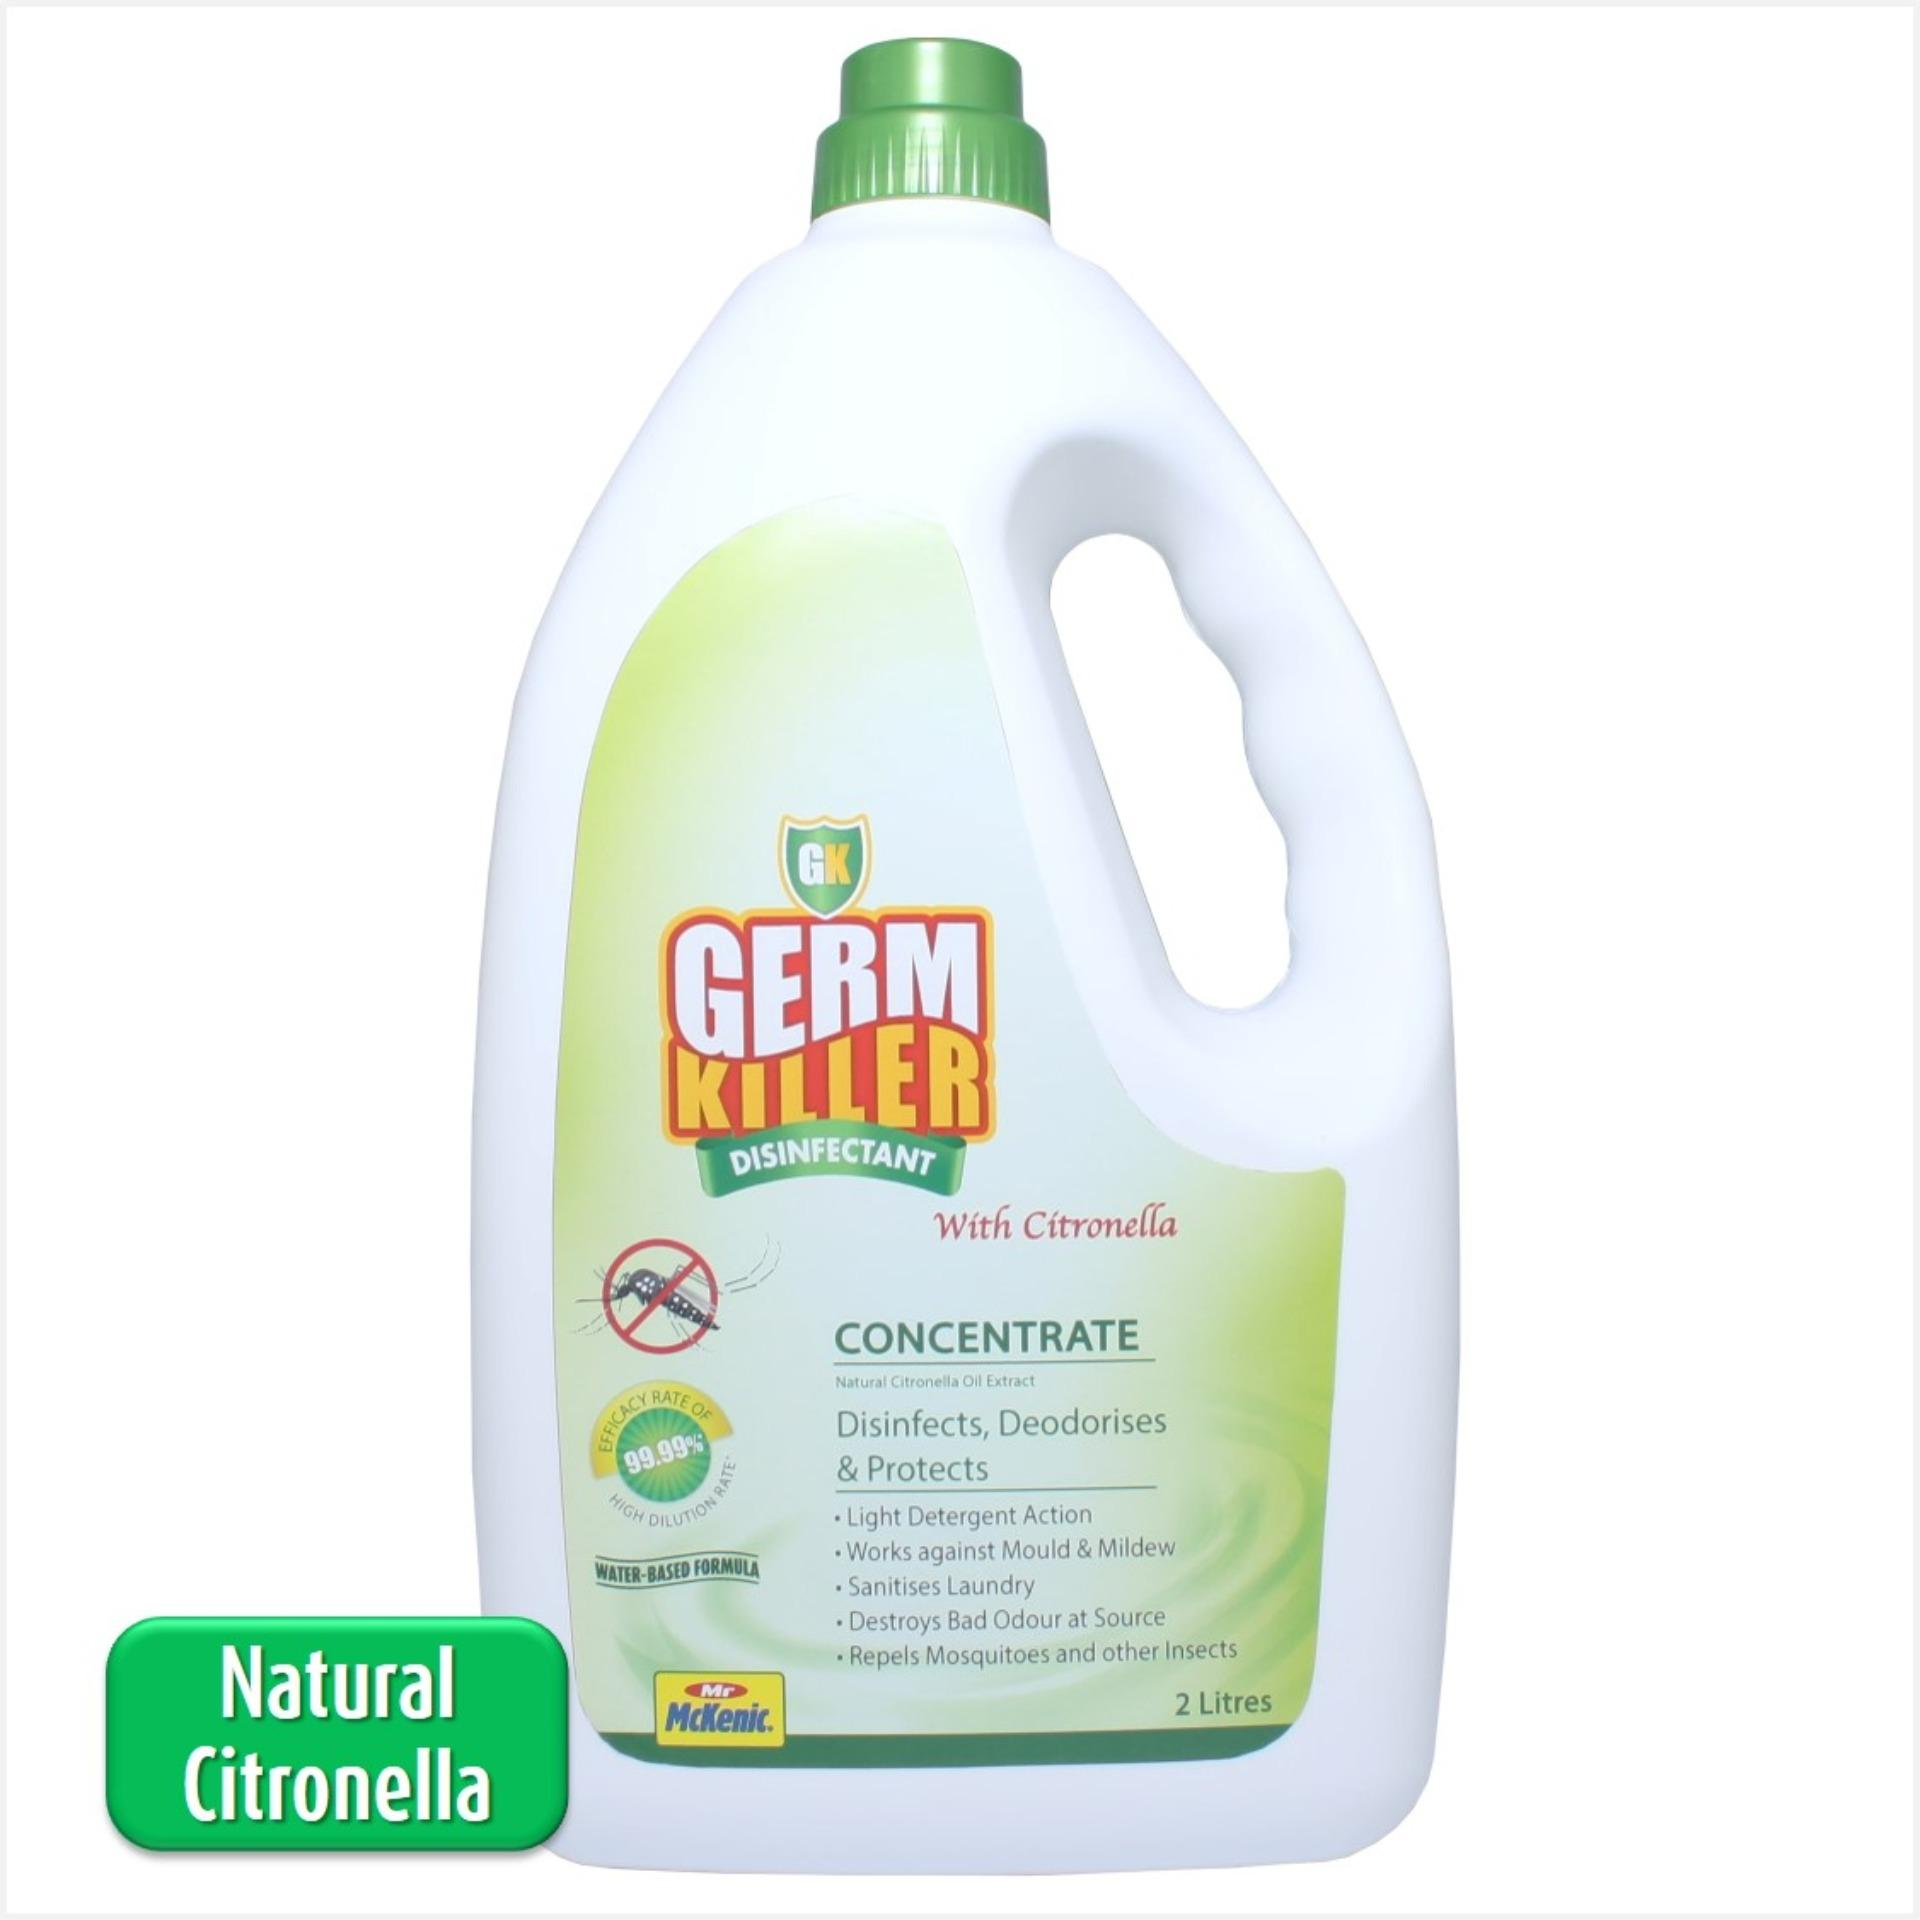 Price Gk Germkiller Gk Concentrate With Natural Citronella 2L Protect You Your Loved Ones From Zika Virus And Other Harmful Germs For Use At Home And For Laundry Singapore